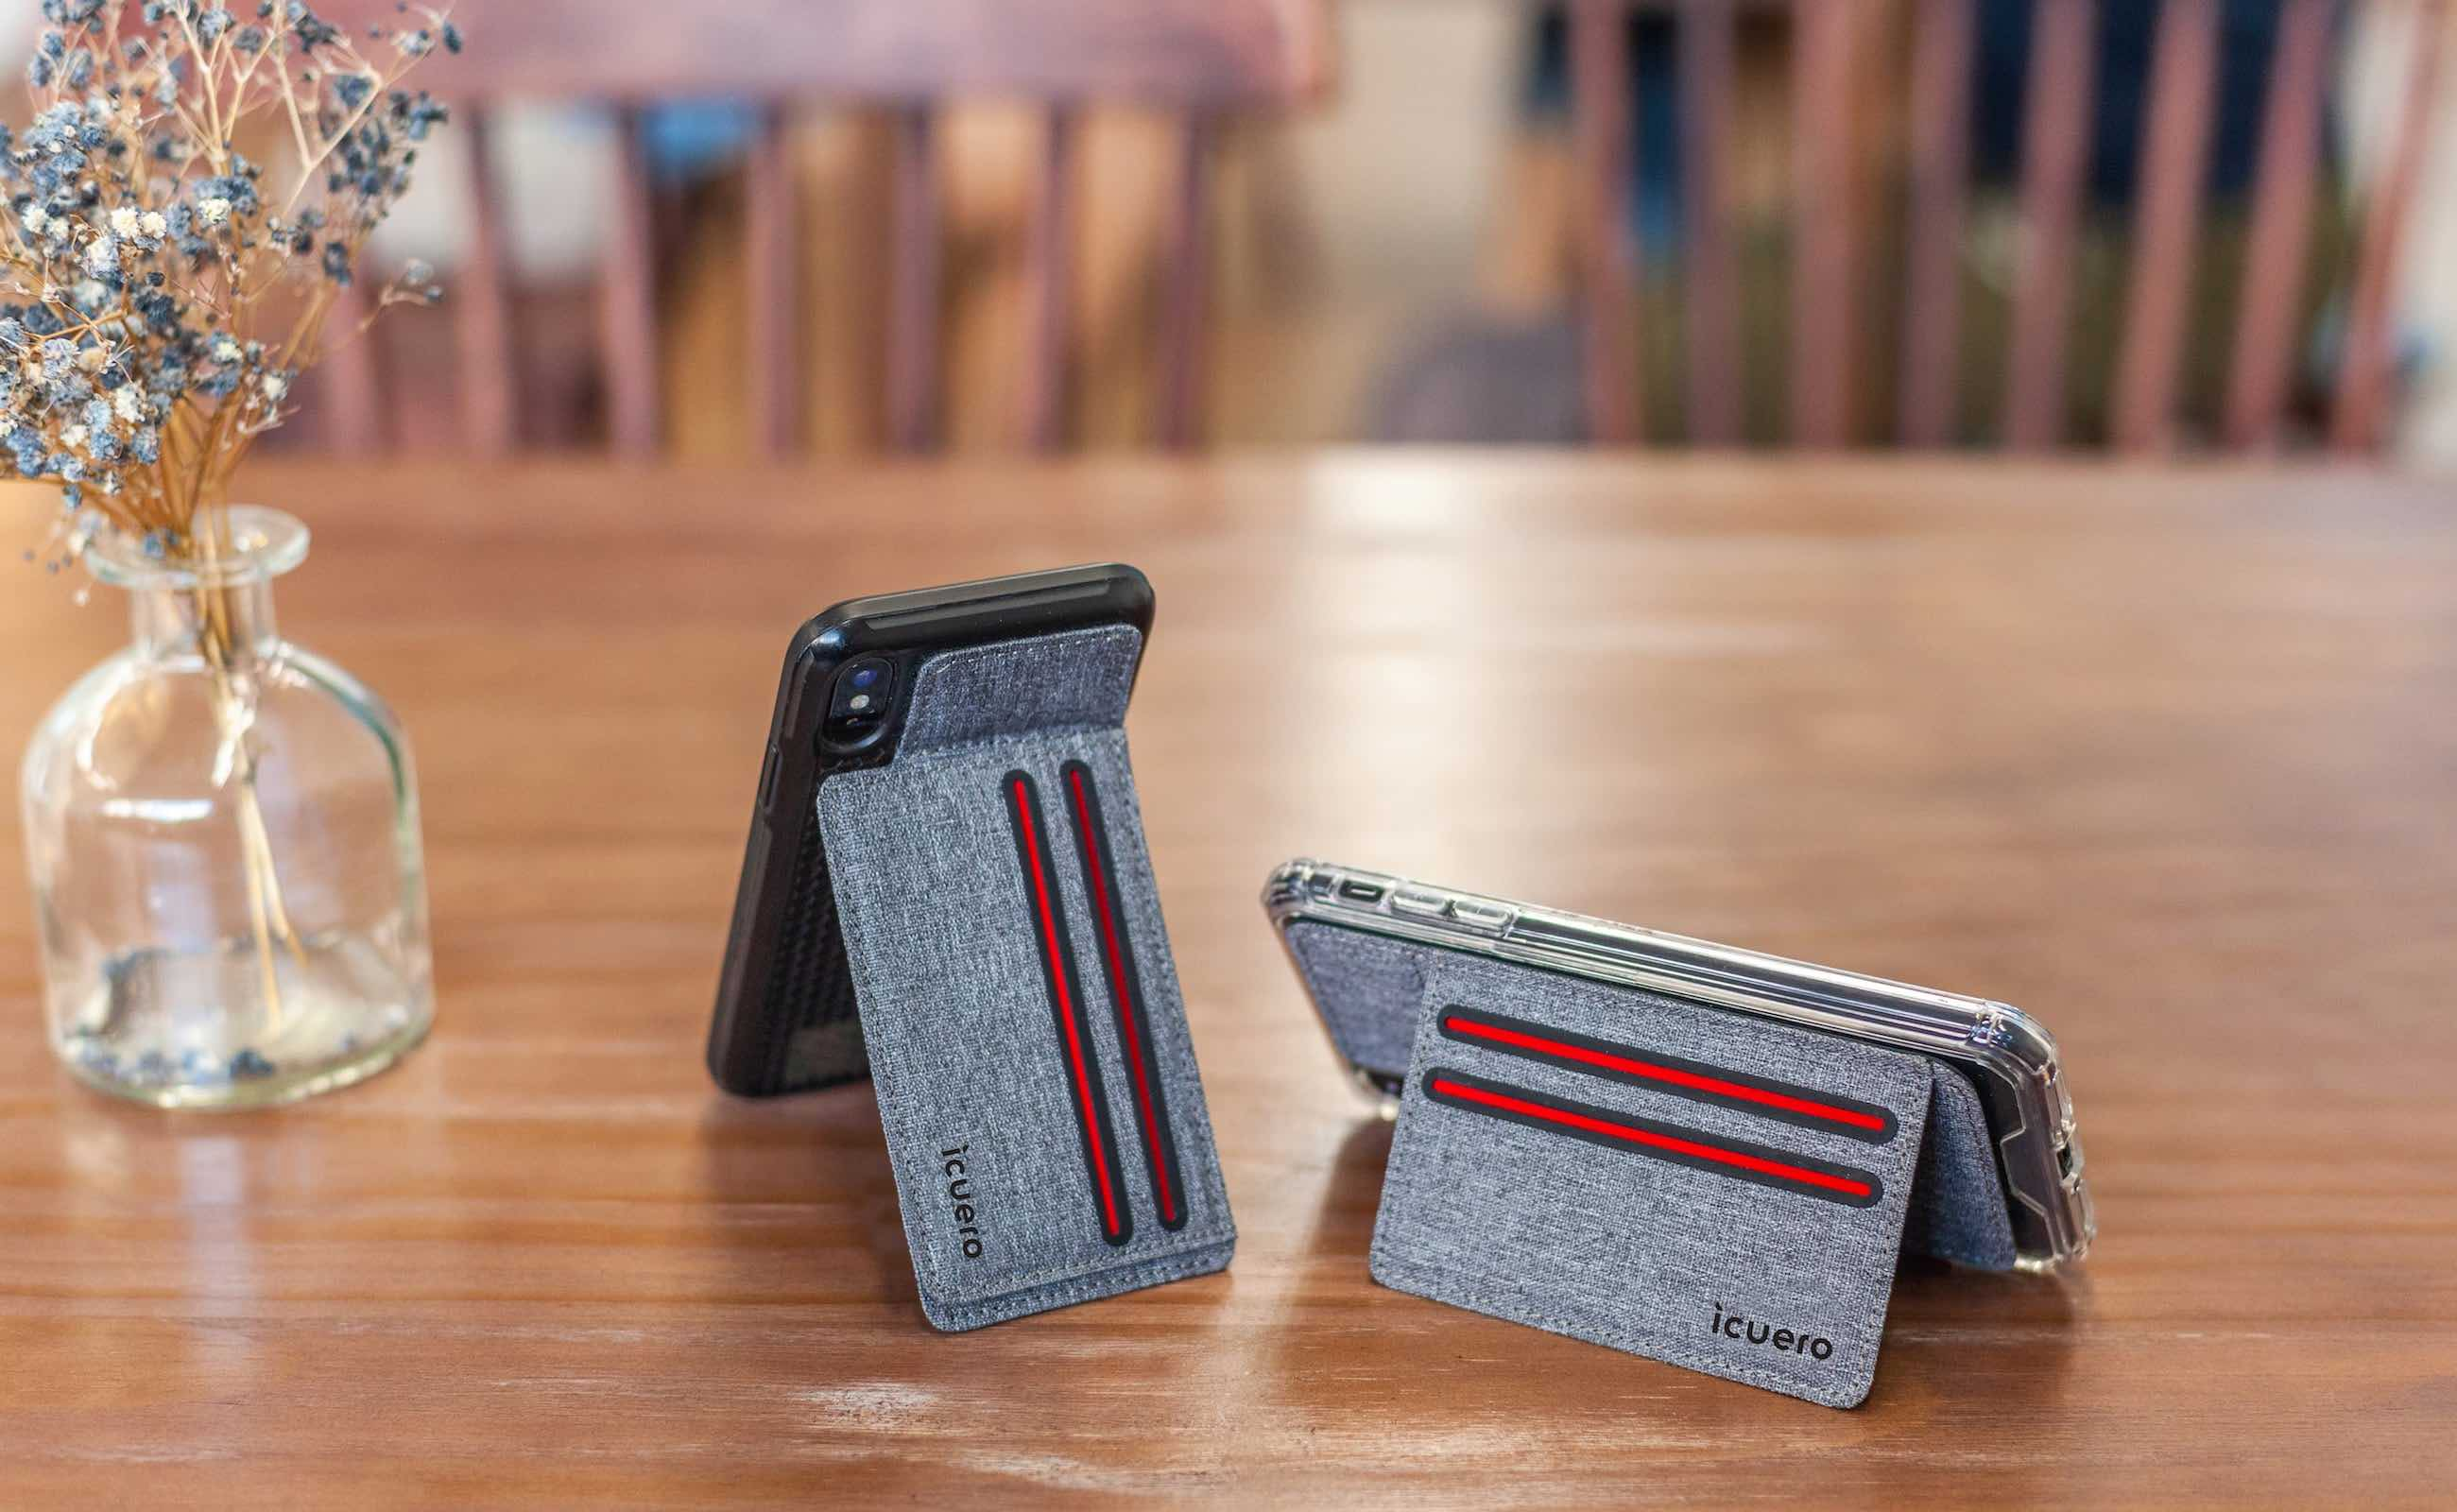 icuero Neck-Saving Smartphone Wallet Stand sticks to the back of your phone for hands-free use